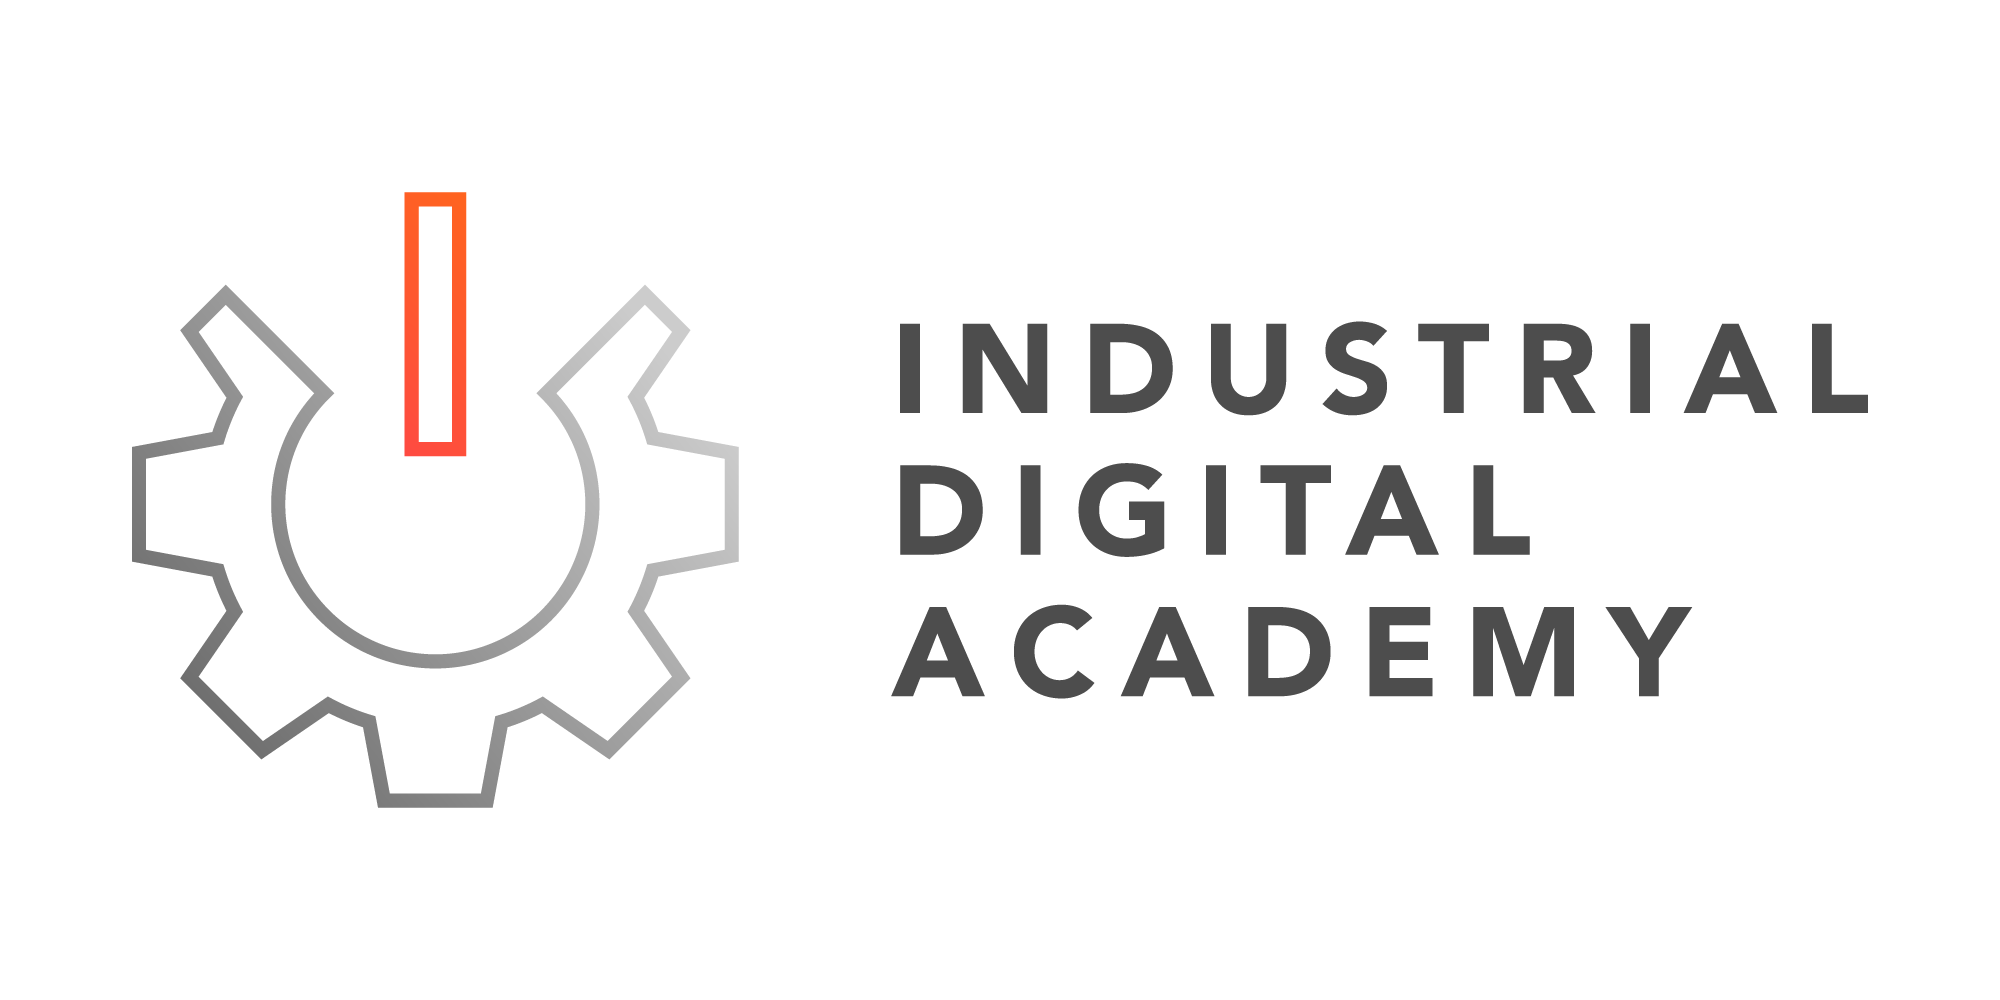 Industrial Digital Academy Logo - Horizontal L